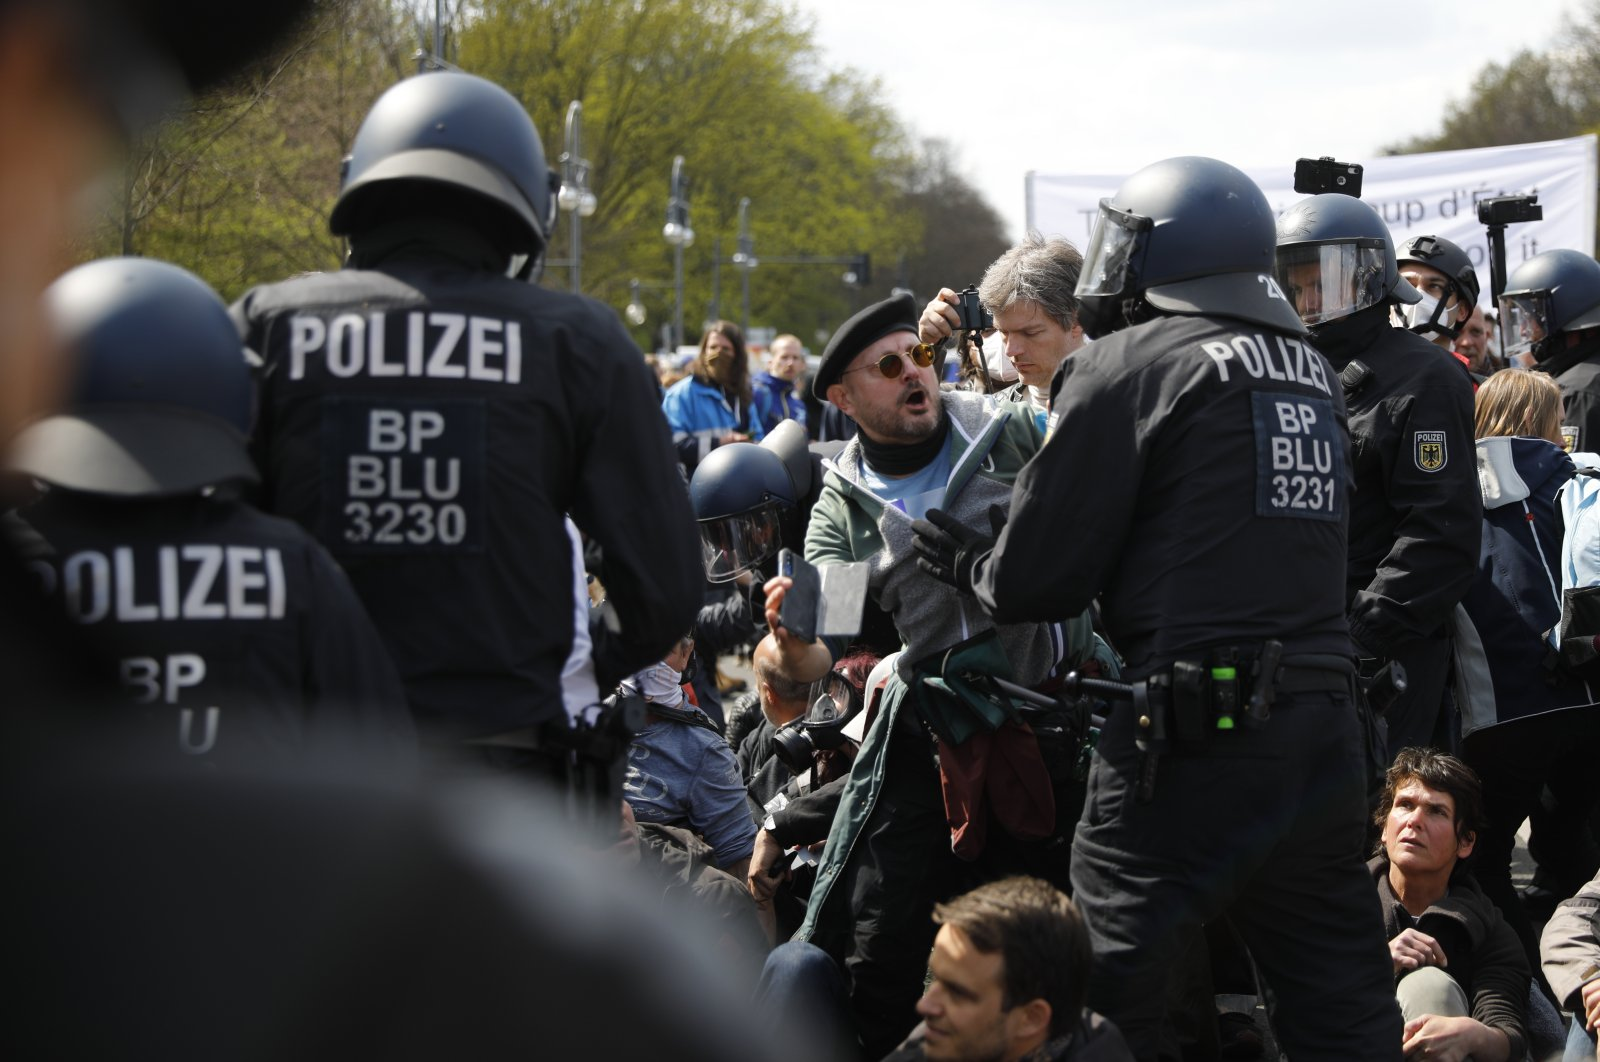 Police officers argue with demonstrators after police stop a protest rally against the German government's policy to battle the coronavirus pandemic in Berlin, Germany, April 21, 2021. (AP Photo)